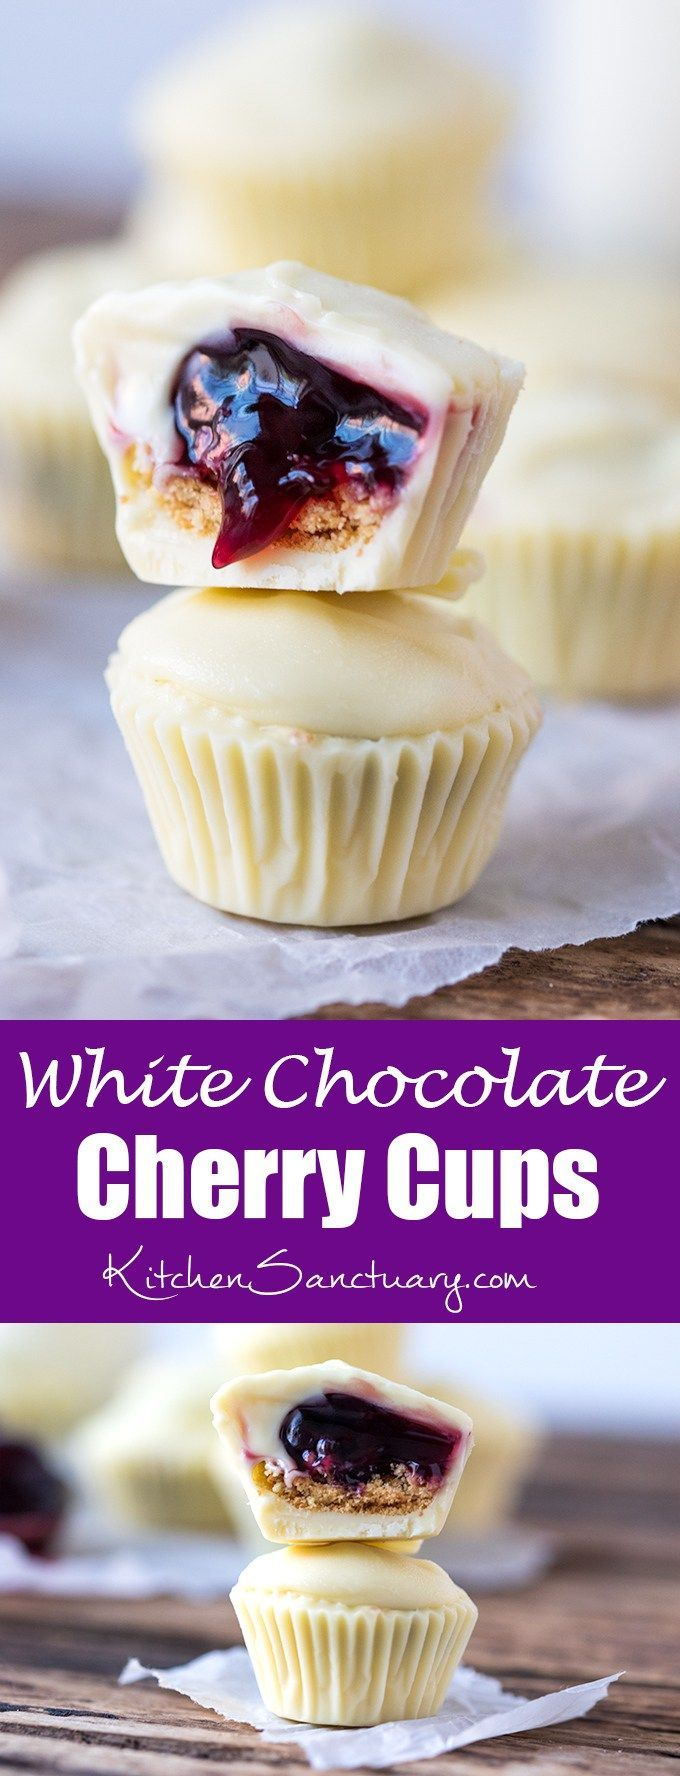 Bite sized creamy white chocolate cups filled with crushed biscuit and cherries - a simple 3-ingredient treat!